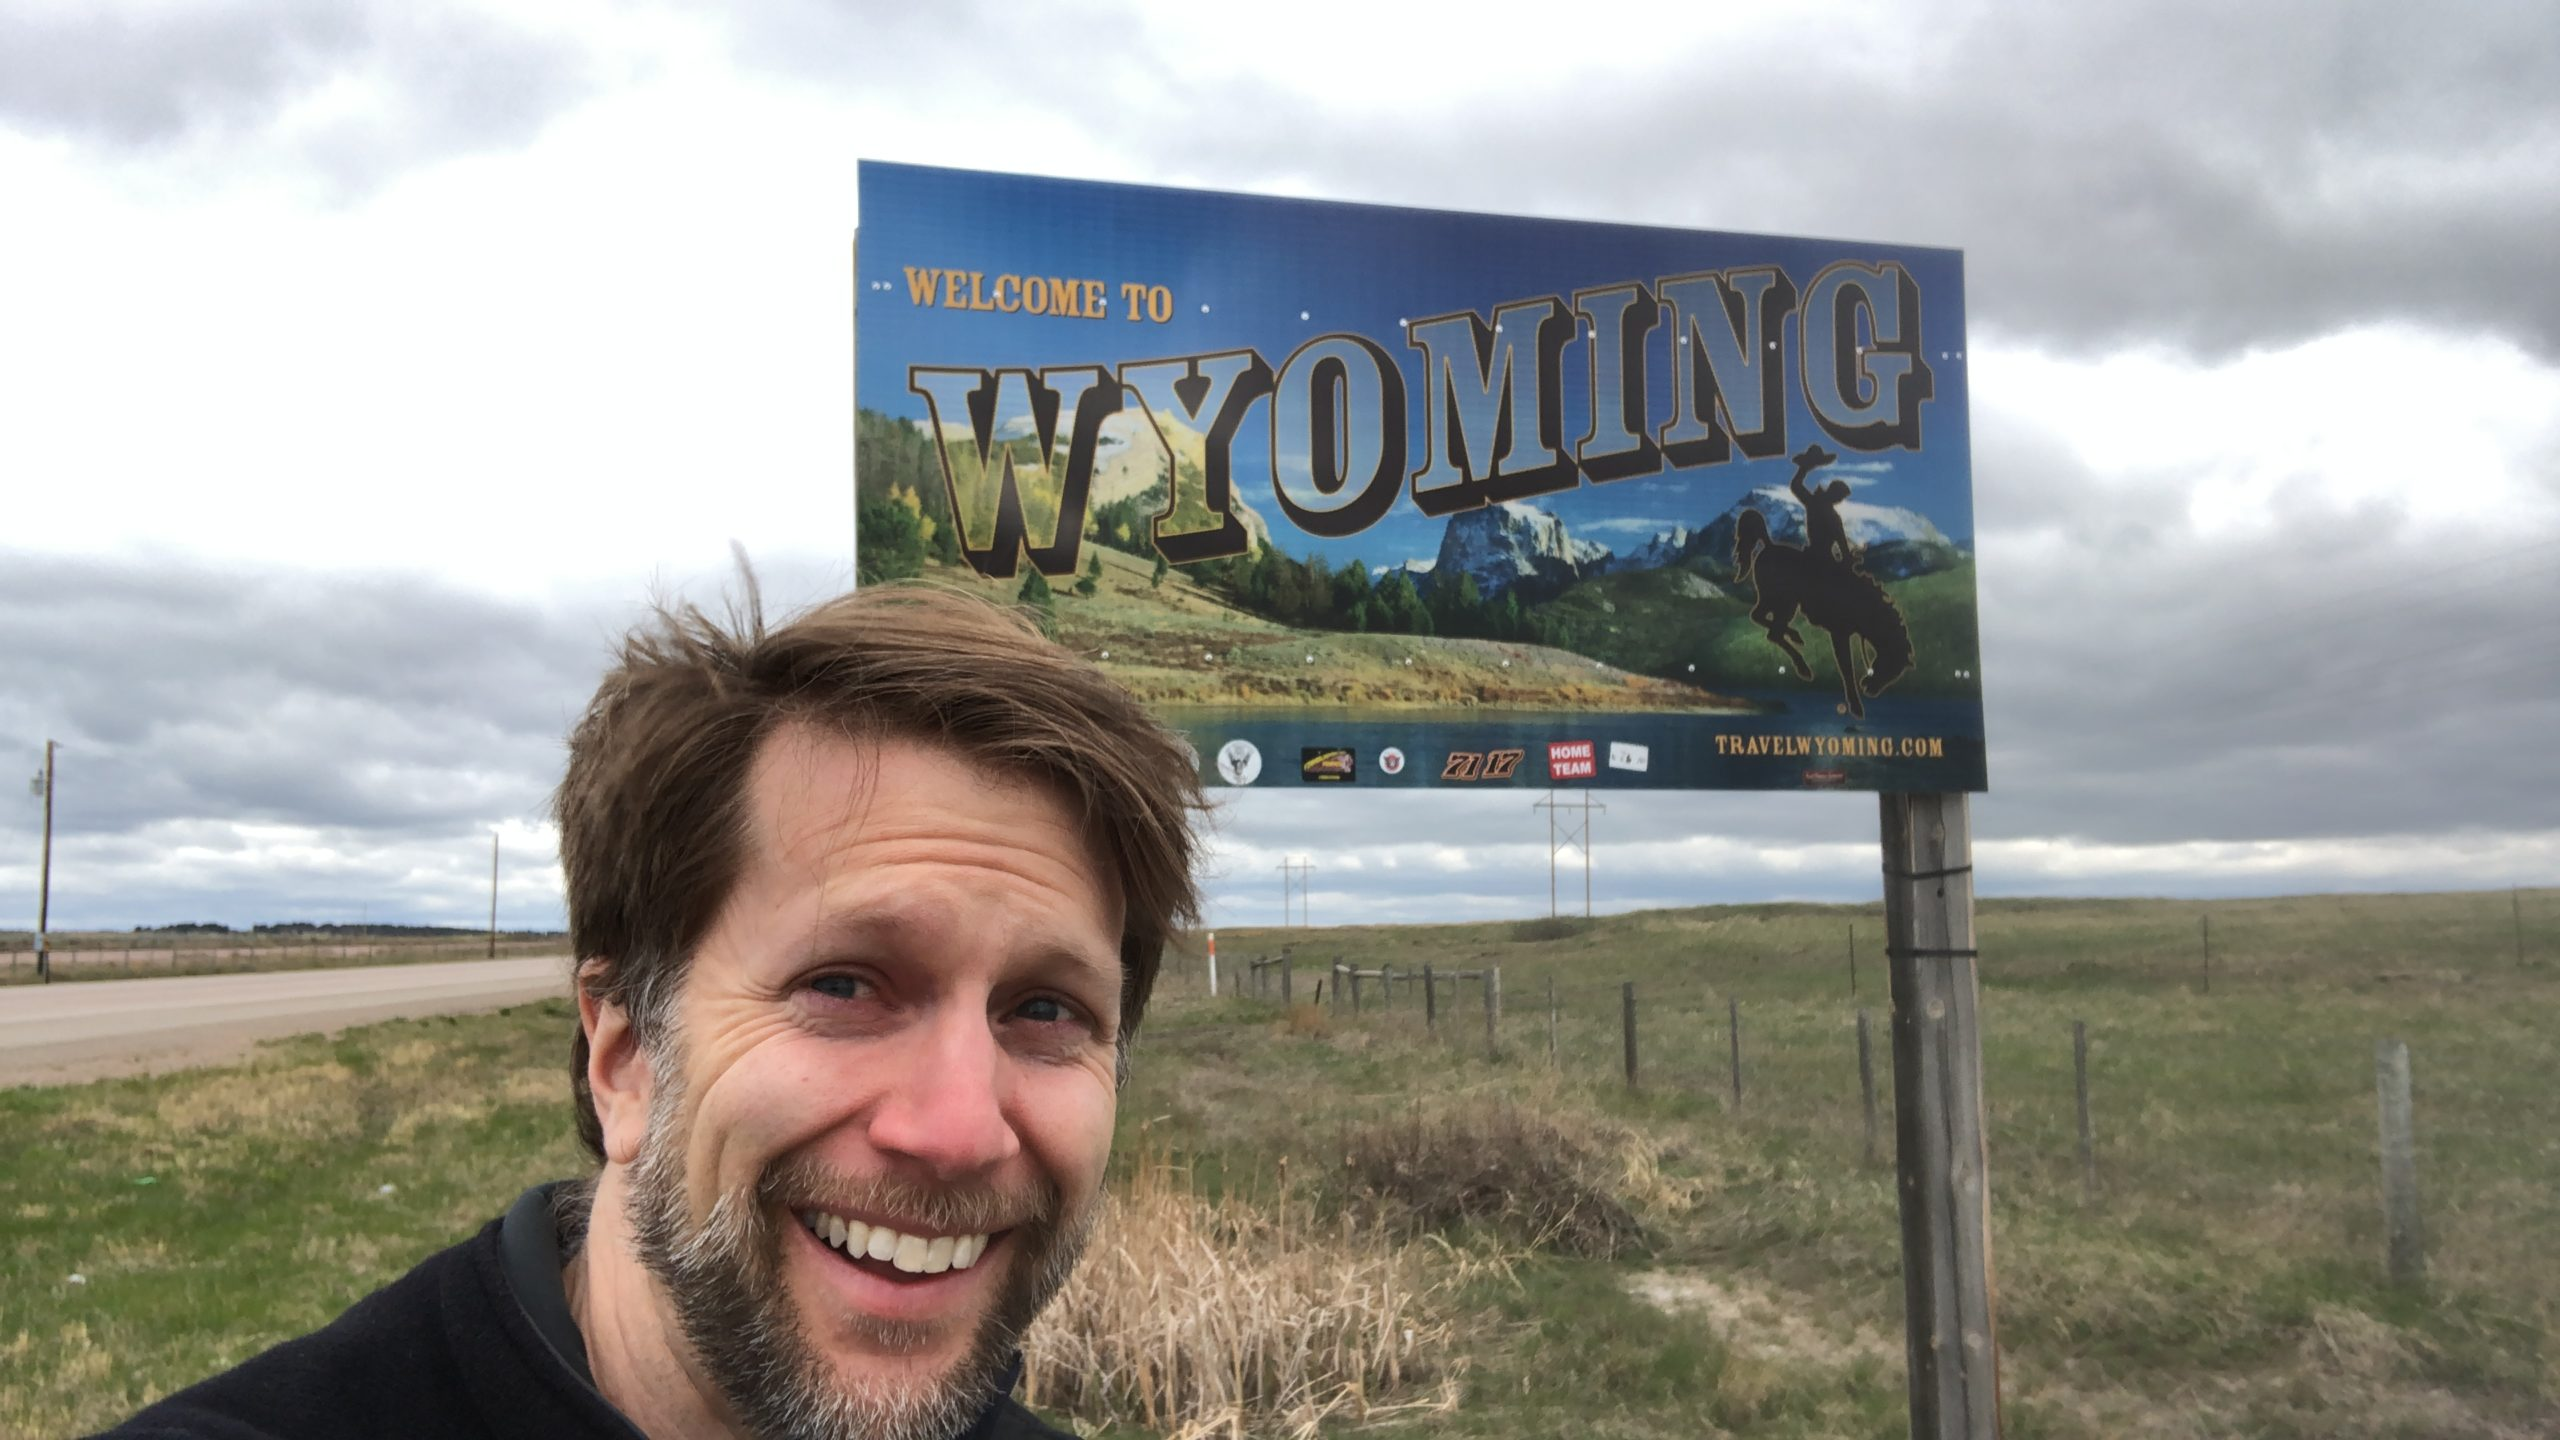 Ken in windy pose in front of Welcome to Wyoming highway sign